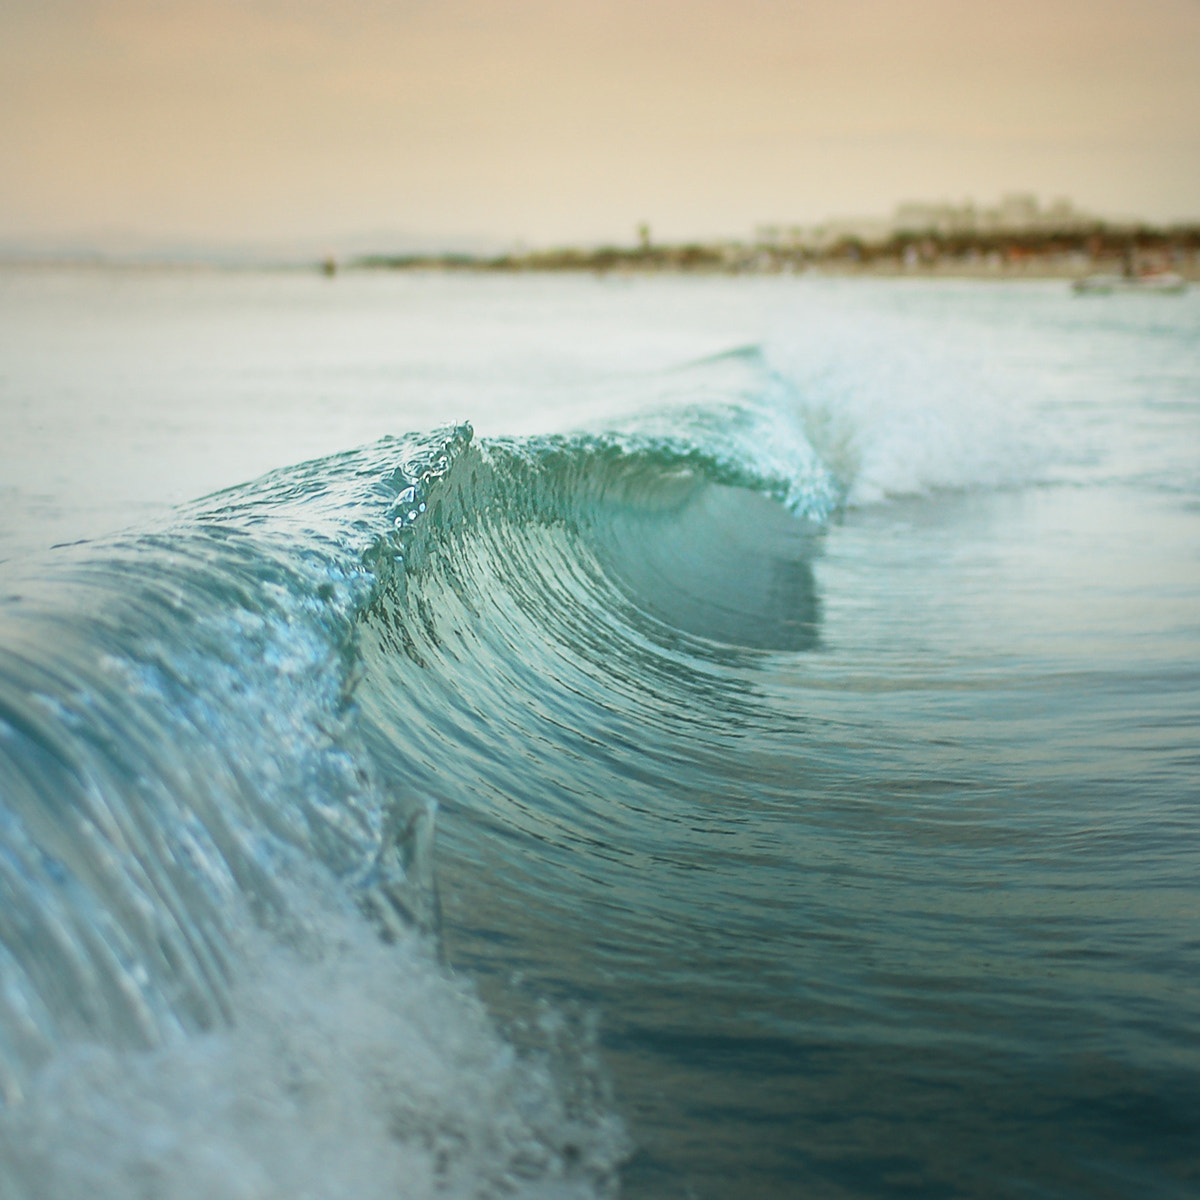 Photograph Wave by Etienne Roudaut on 500px